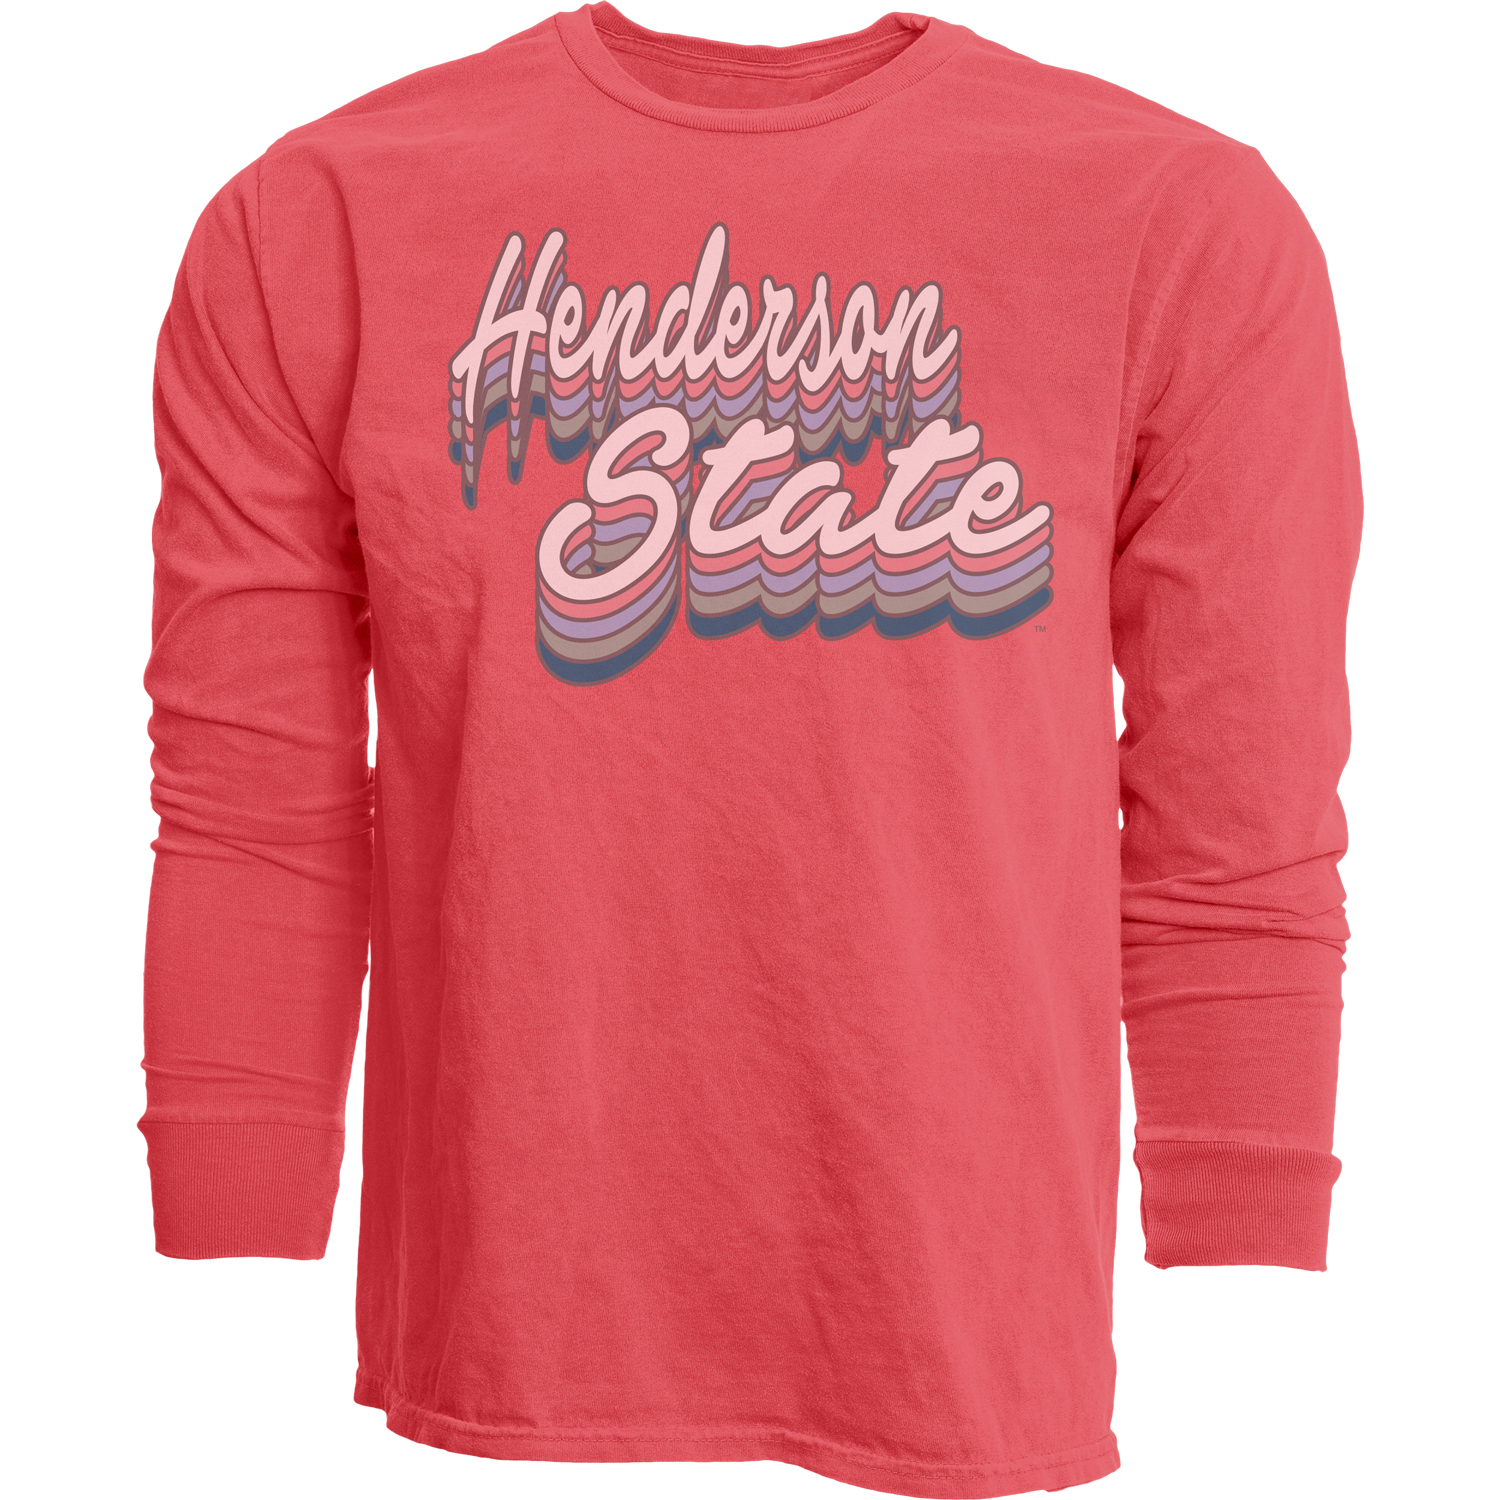 Henderson State Give Good Vibes Long Sleeve T-Shirt